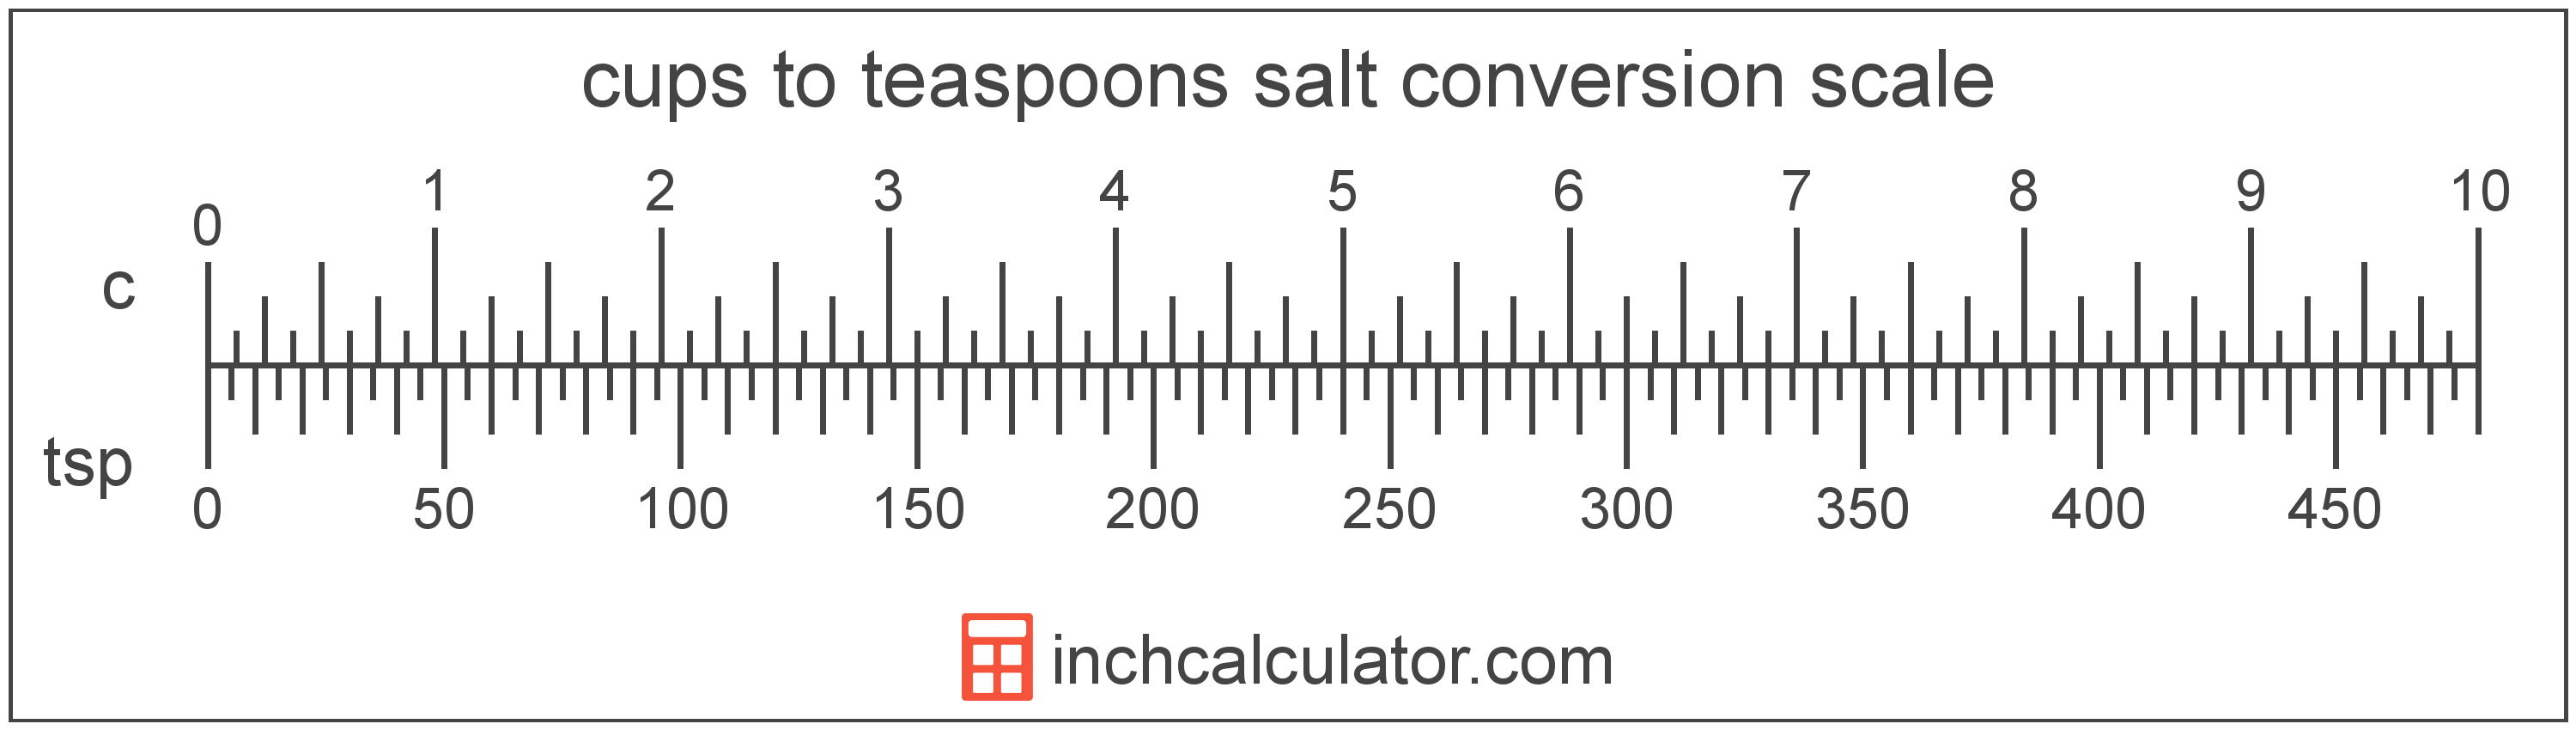 conversion scale showing cups and equivalent teaspoons salt volume values